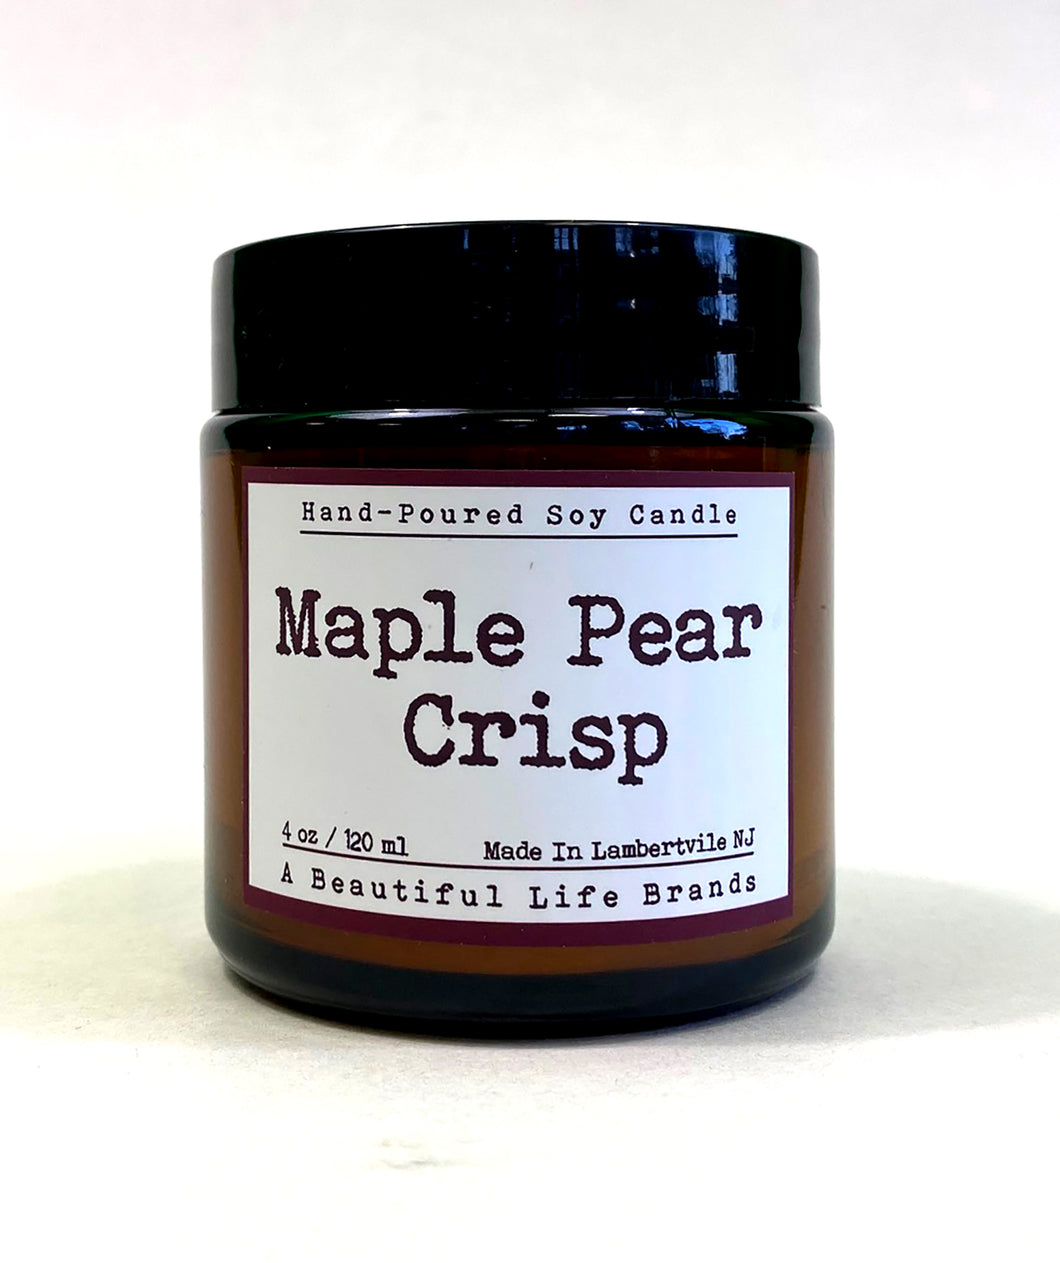 Maple Pear Crisp Candle by ABL